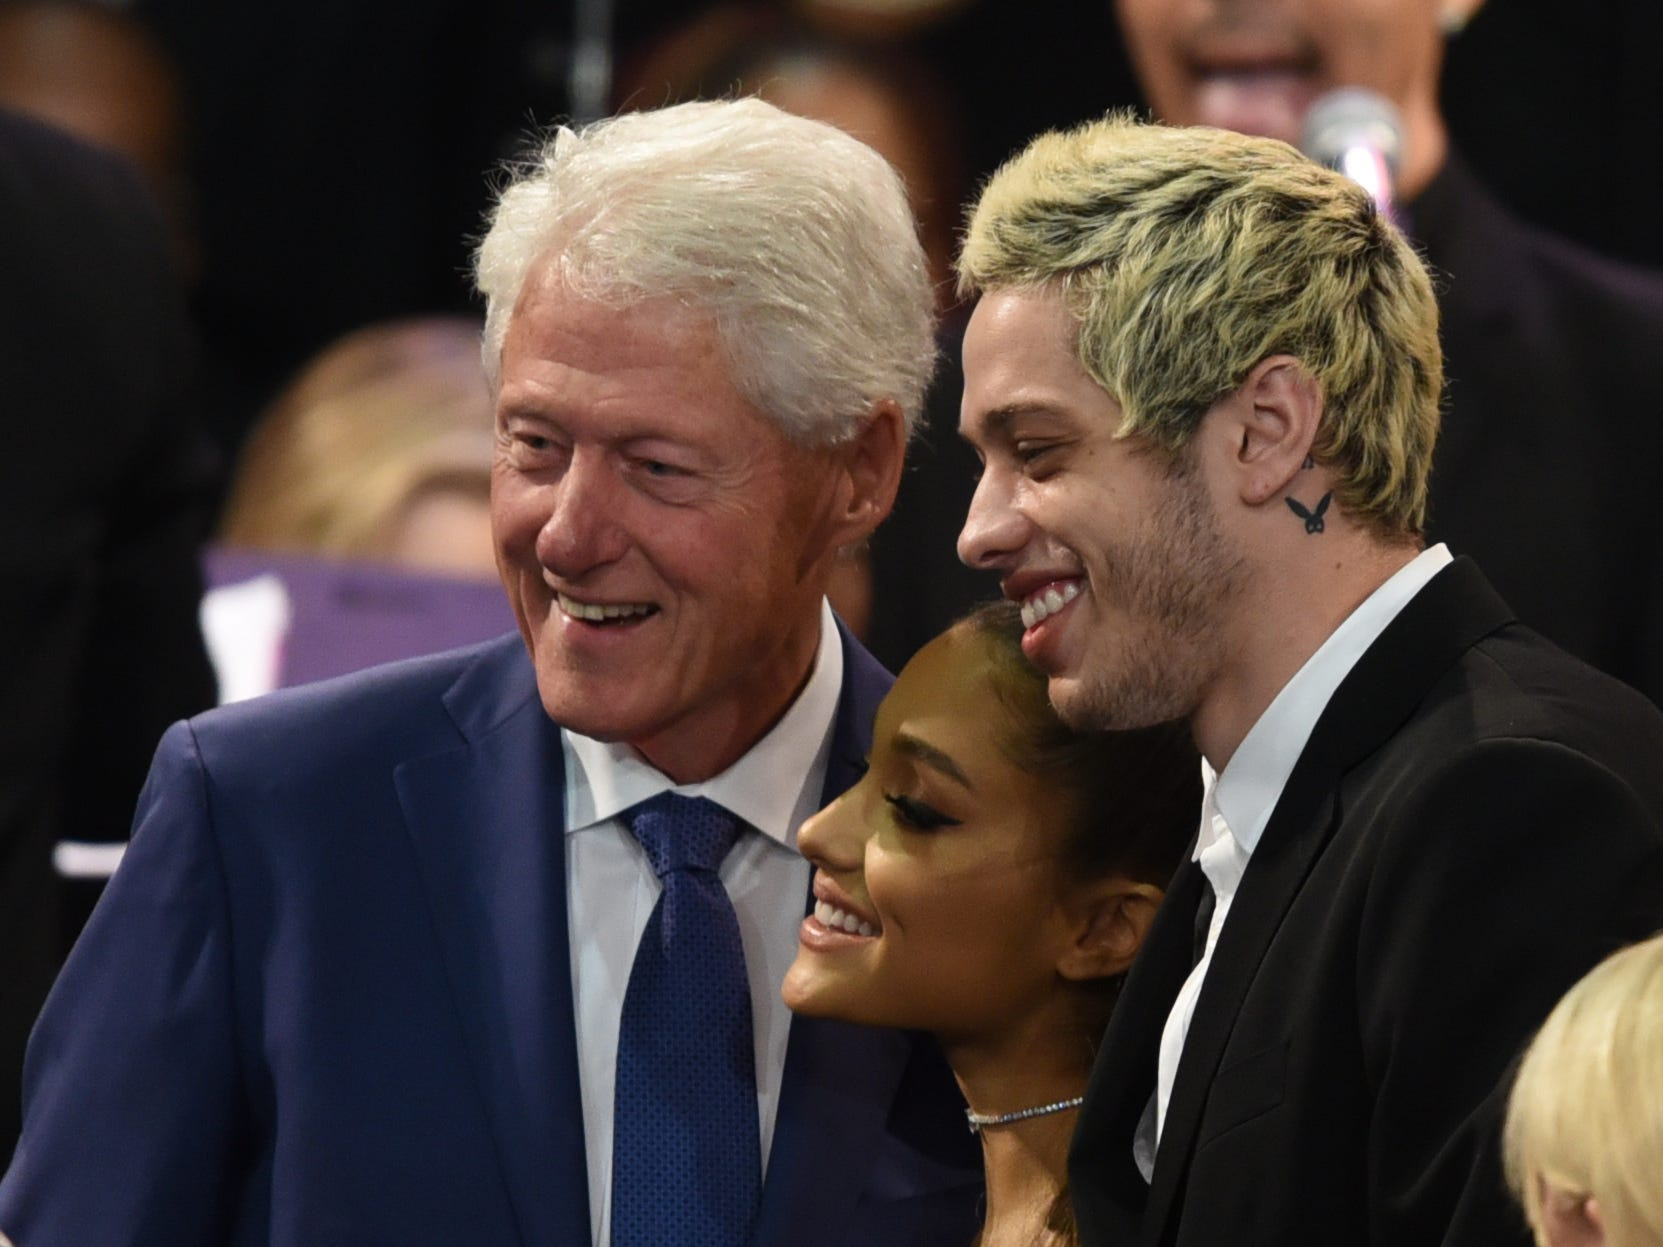 President Bill Clinton poses with Ariana Grande and comedian Pete Davidson during Aretha Franklin's memorial service at Greater Grace Temple.